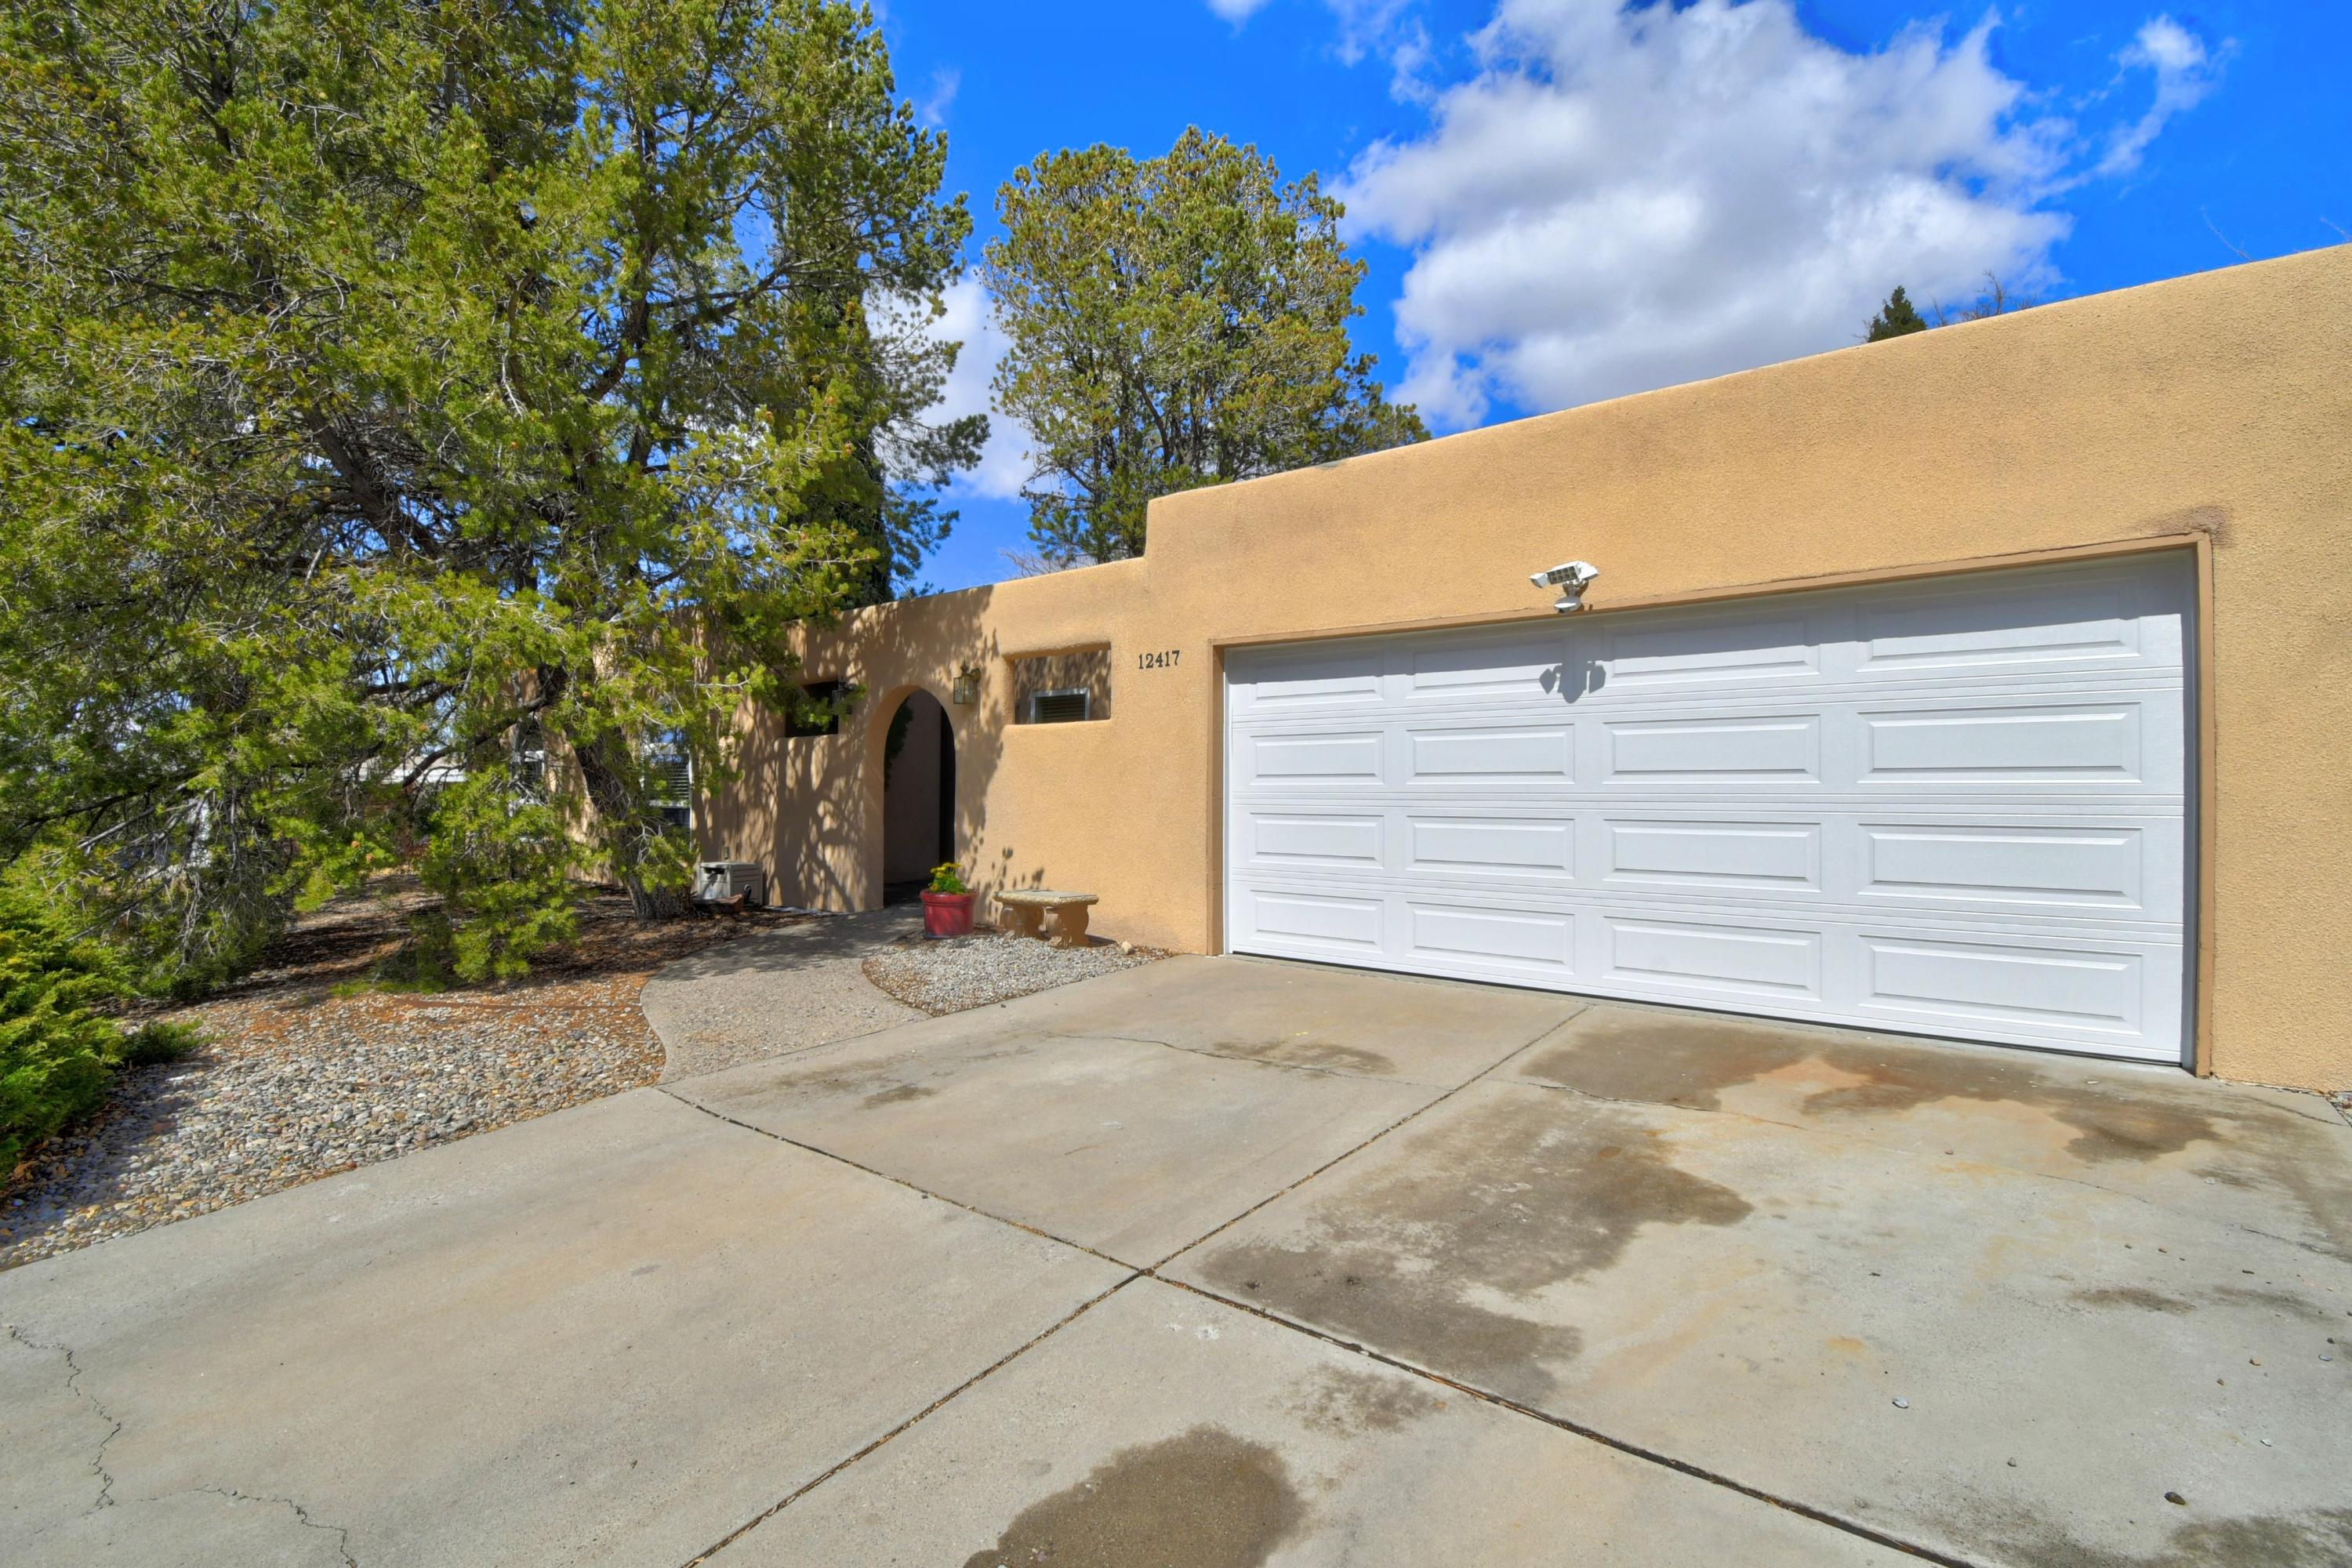 This is it! Very well maintained, 1 story home in NE ABQ.  This 4 bedroom, 2 bathroom home is situated on an established street near Tramway and Menual. The front patio welcomes you into the extremely cozy home! Each room is very spacious and private.  The master bedroom has its own access to the beautiful back covered patio. The kitchen opening to the living area (complete with kiva fireplace) is definitely a huge feature. The large backyard is big enough for any type of gathering. Make your appointment today to see this excellent home in an excellent area!